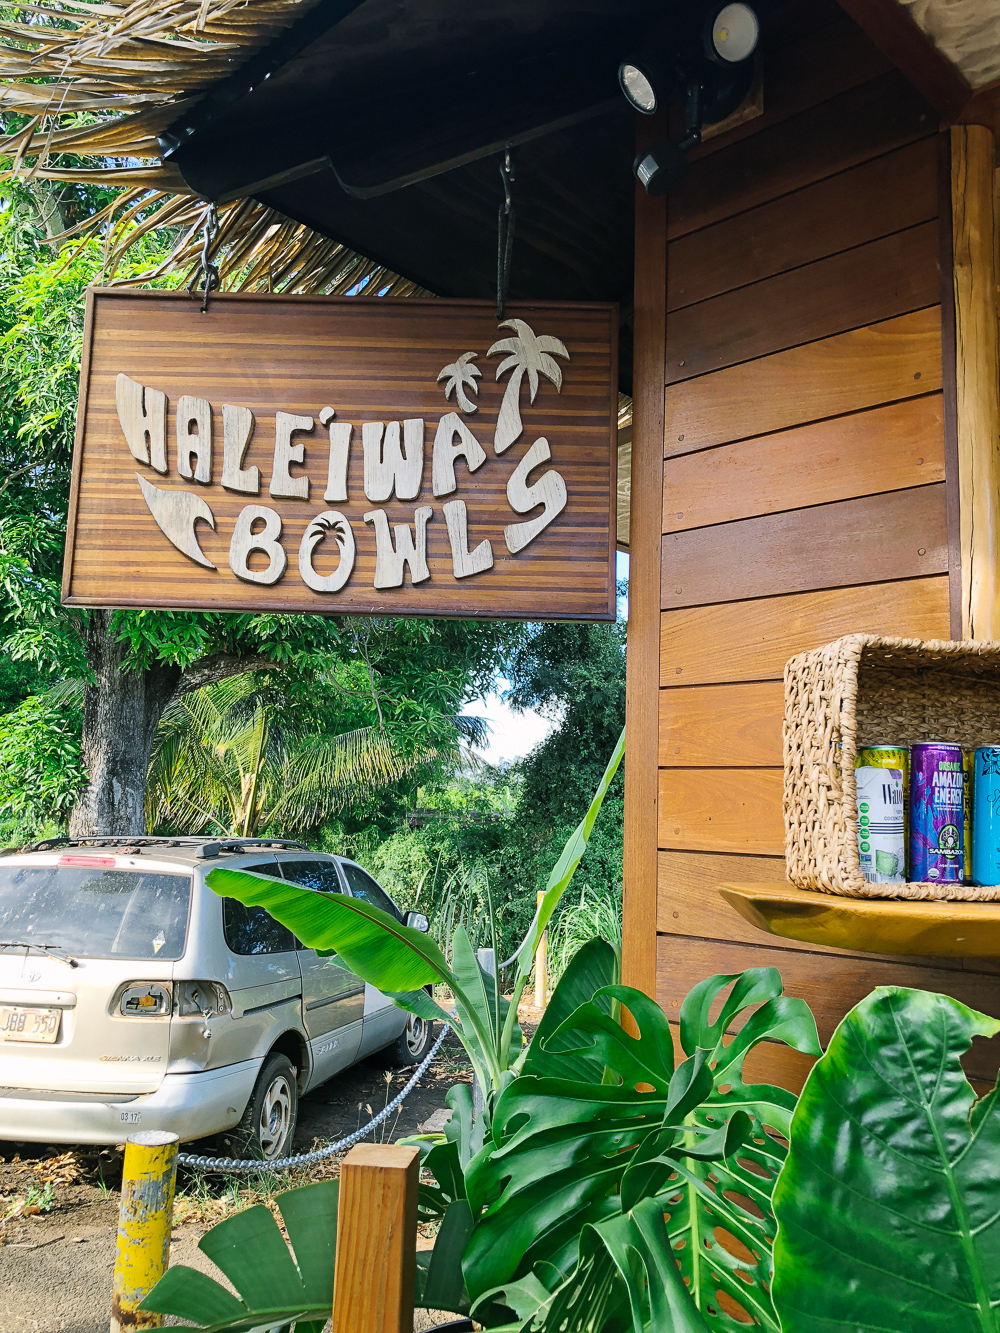 The Ultimate Oahu Travel Guide for the Adventurer - Haleiwa Bowls, Acai Bowls, North Shore Oahu | Sunshine Style